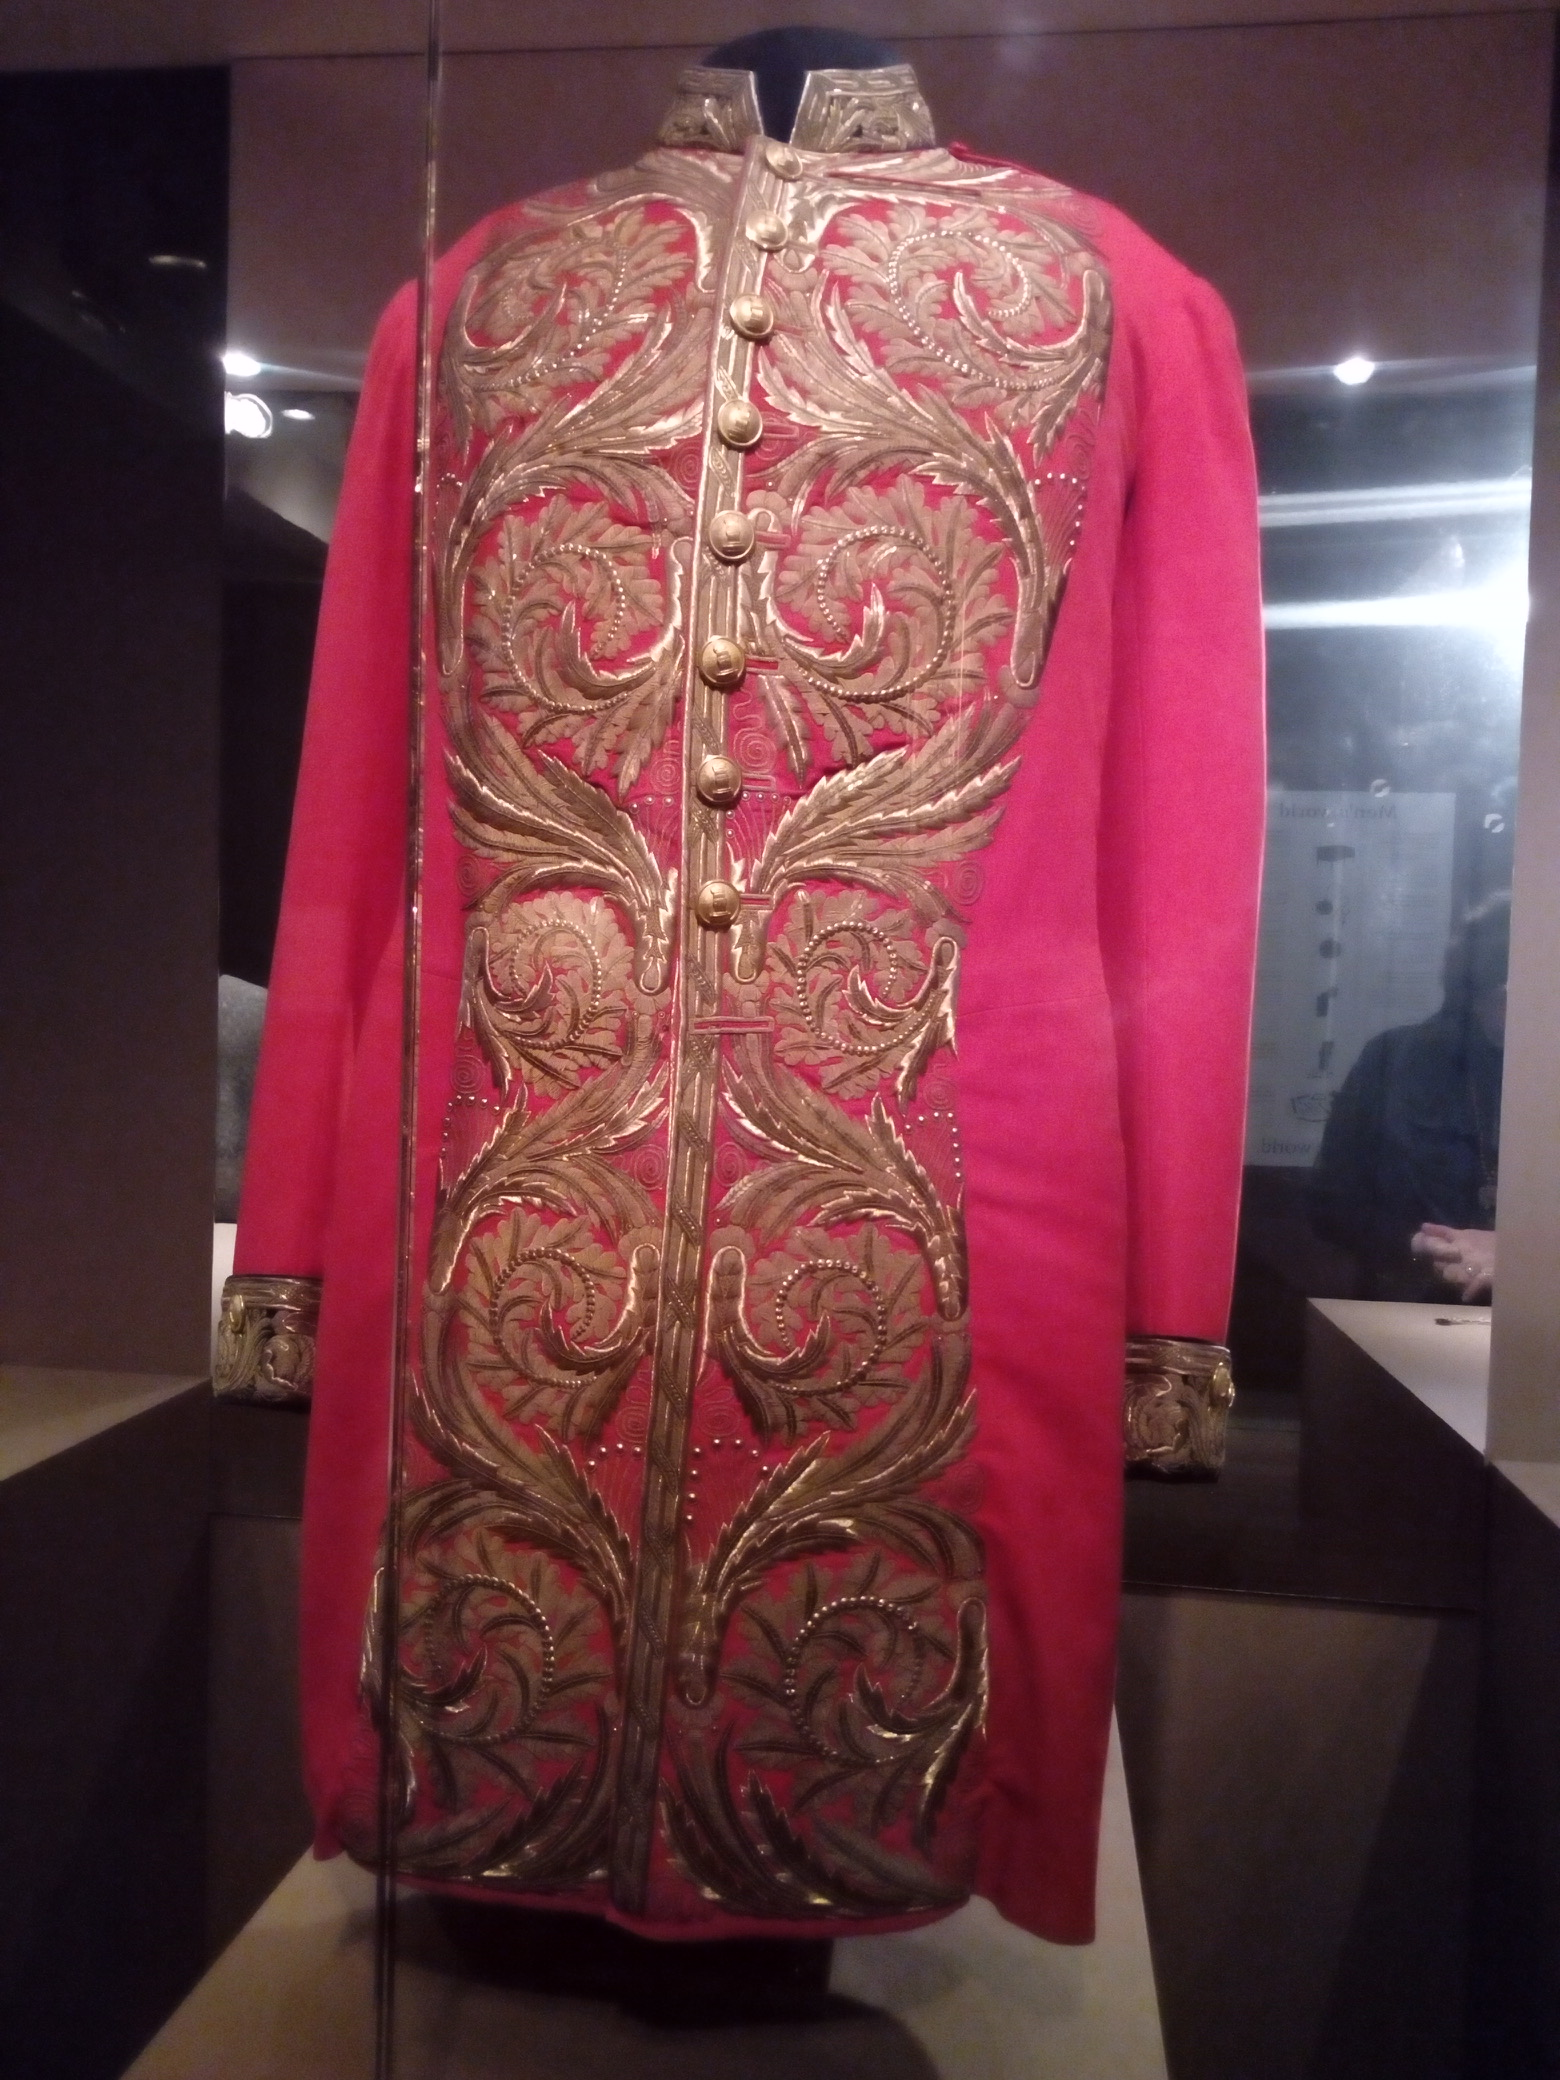 Parade uniform of a Russian senator, velvet and silk. The gold thread embroidery and buttons were considered a sign that the Emperor respected the senator's status. Late 19th-early 20th century.